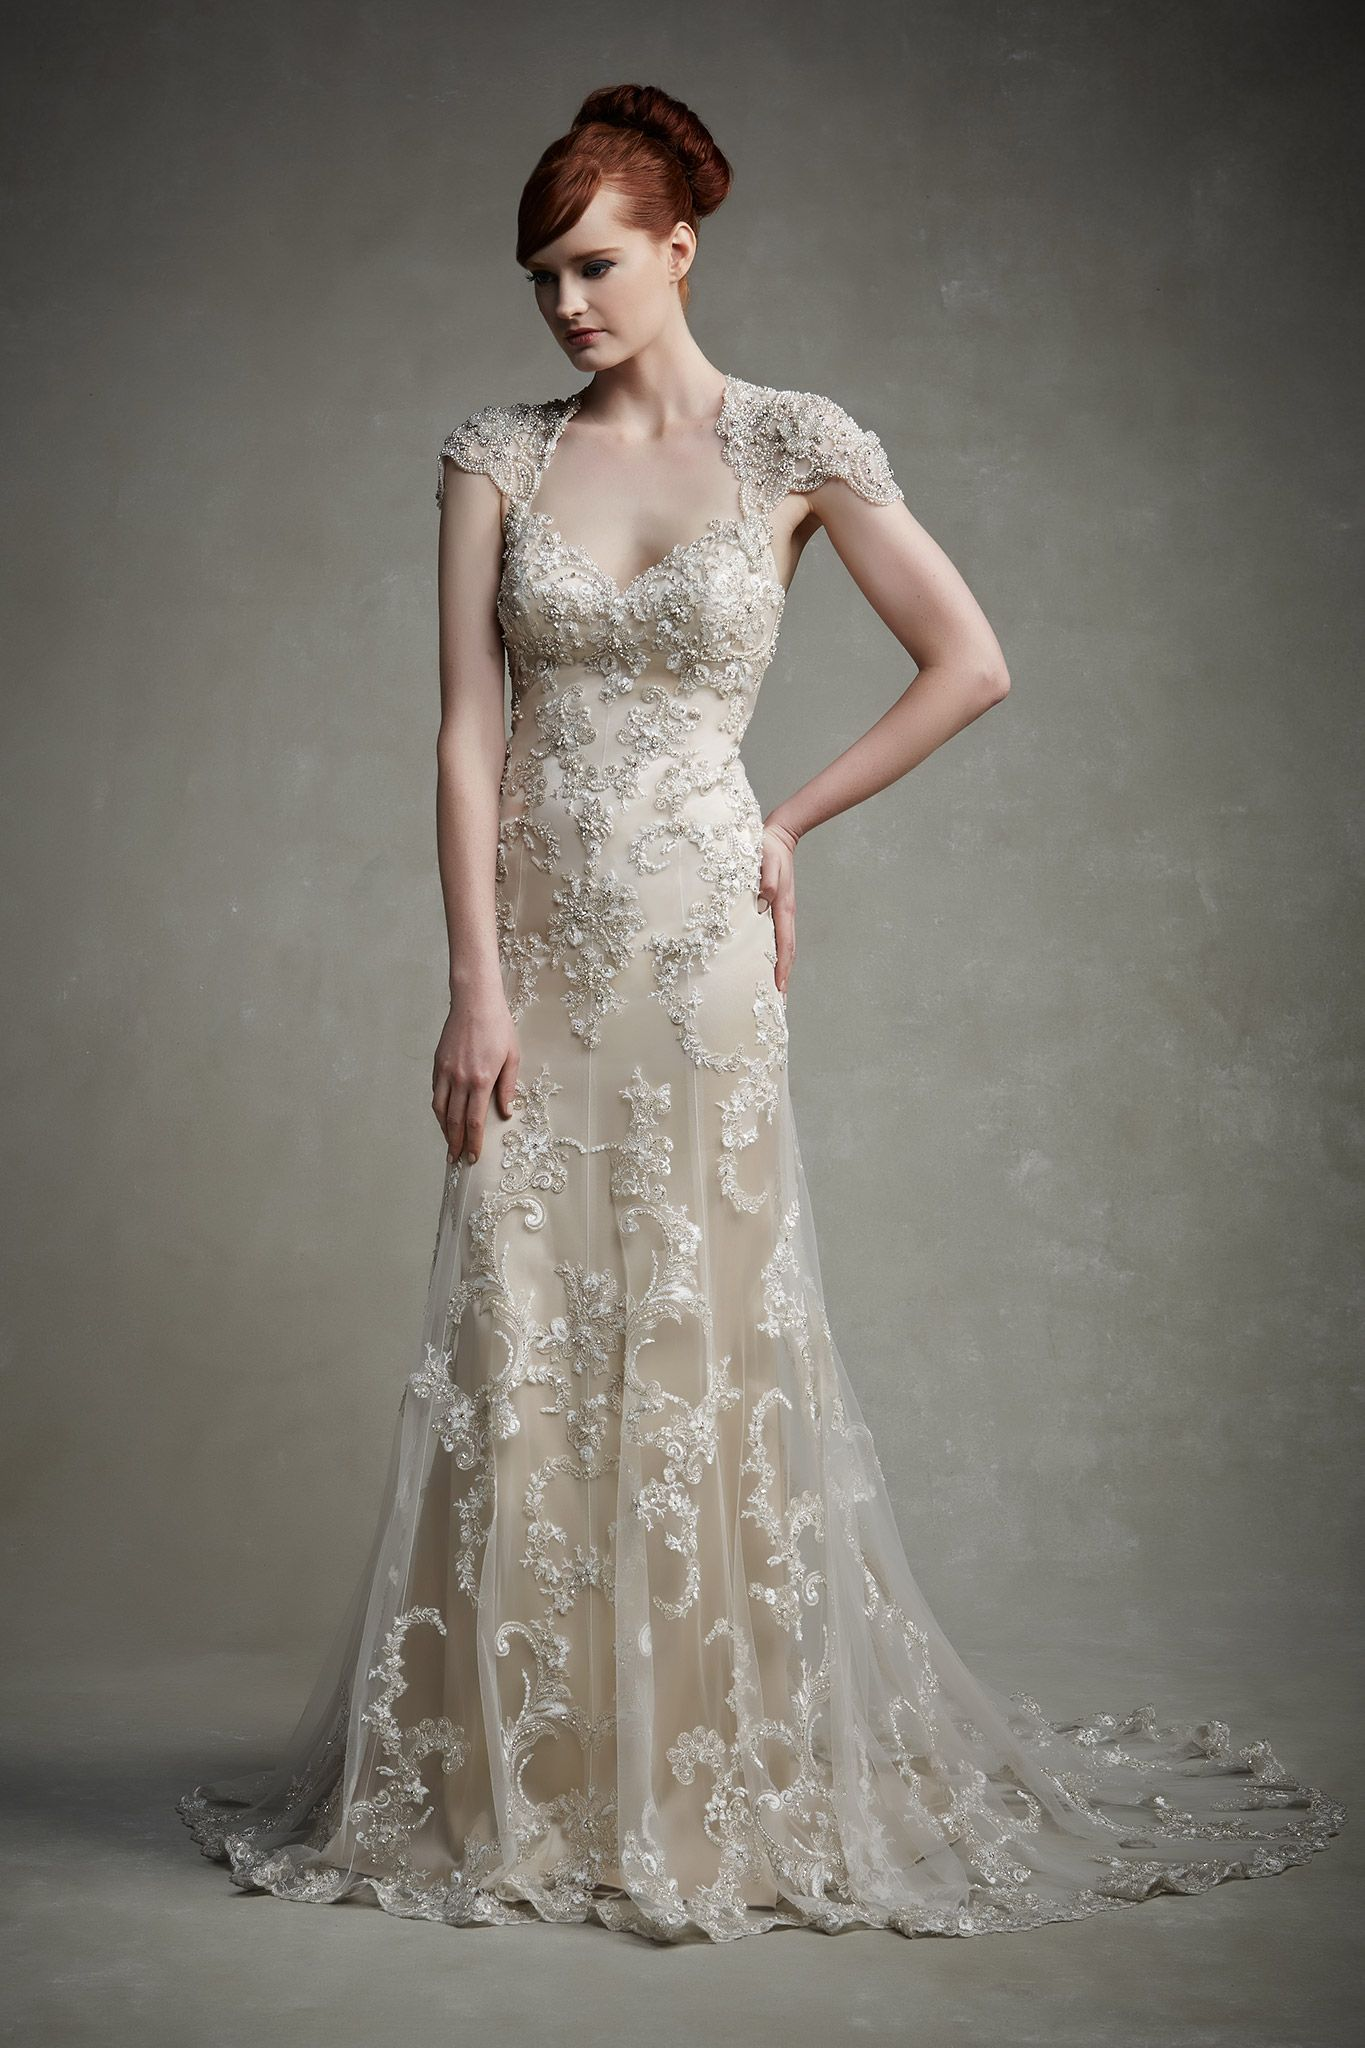 The Biggest Gown Trends From The 2015 Bridal Runway Shows Wedding Dress Champagne Enzoani Wedding Dresses Wedding Dresses